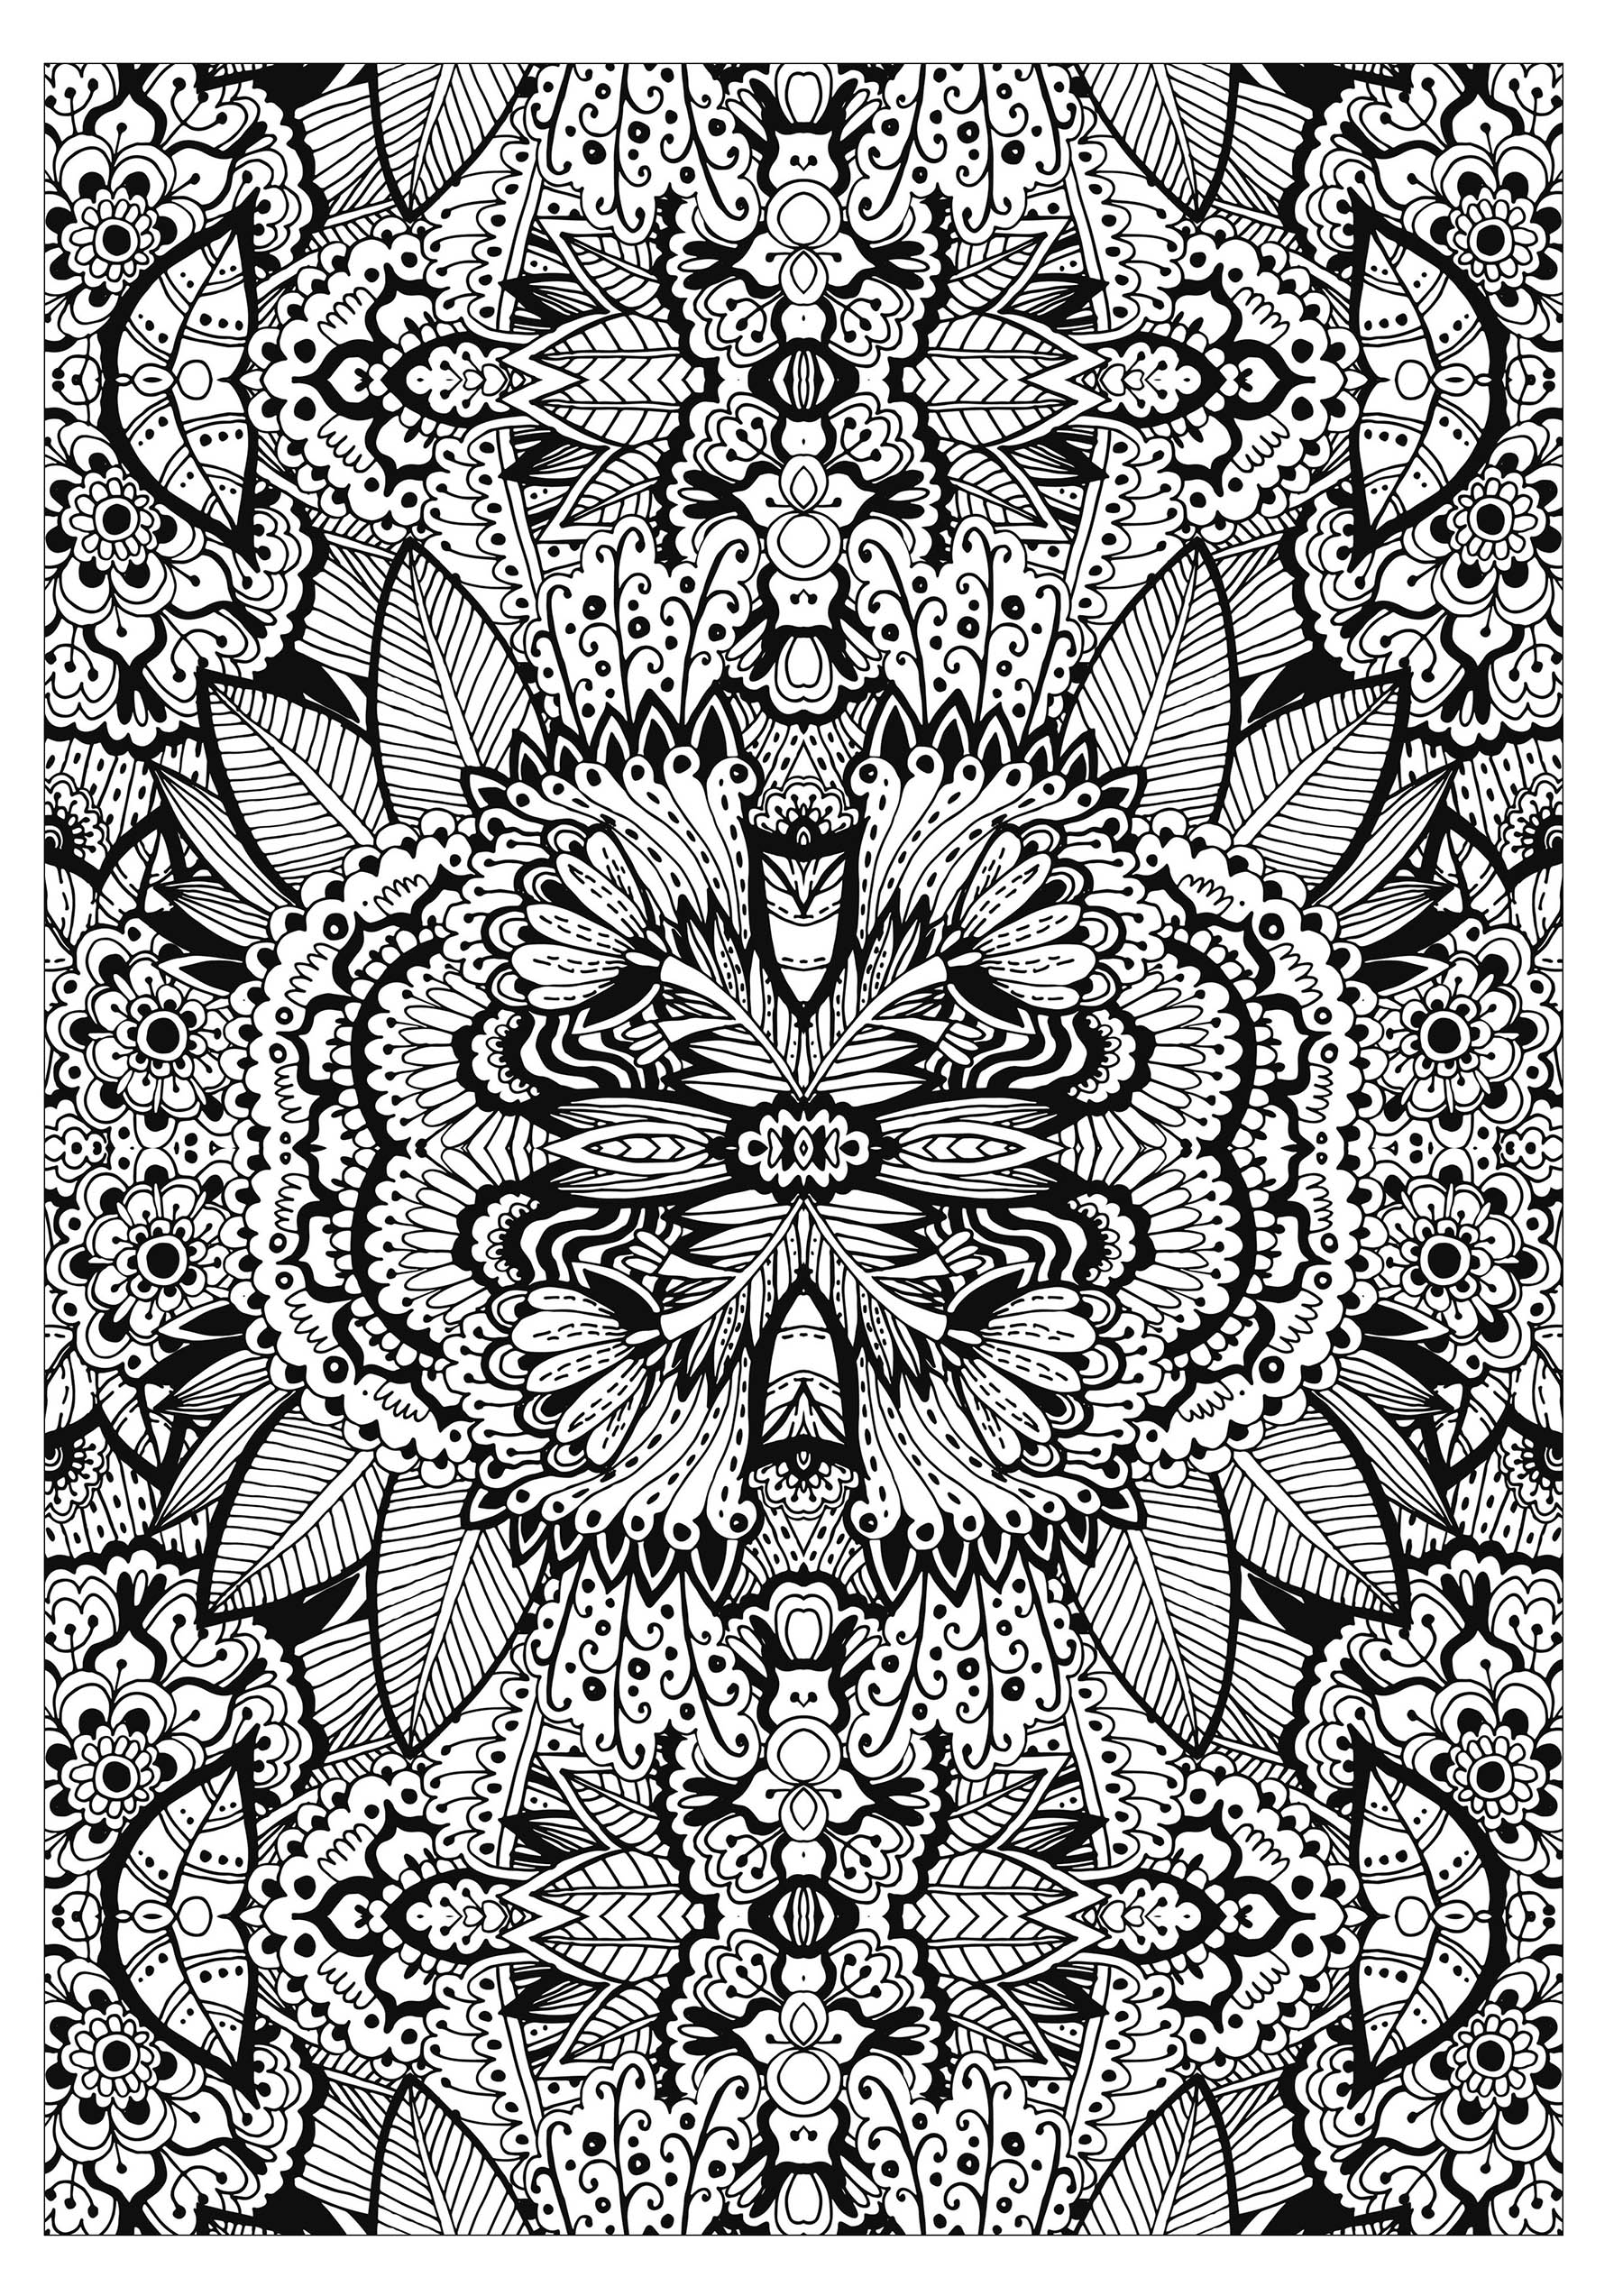 Flower Carpet A Very Complex Coloring Page Squared Version